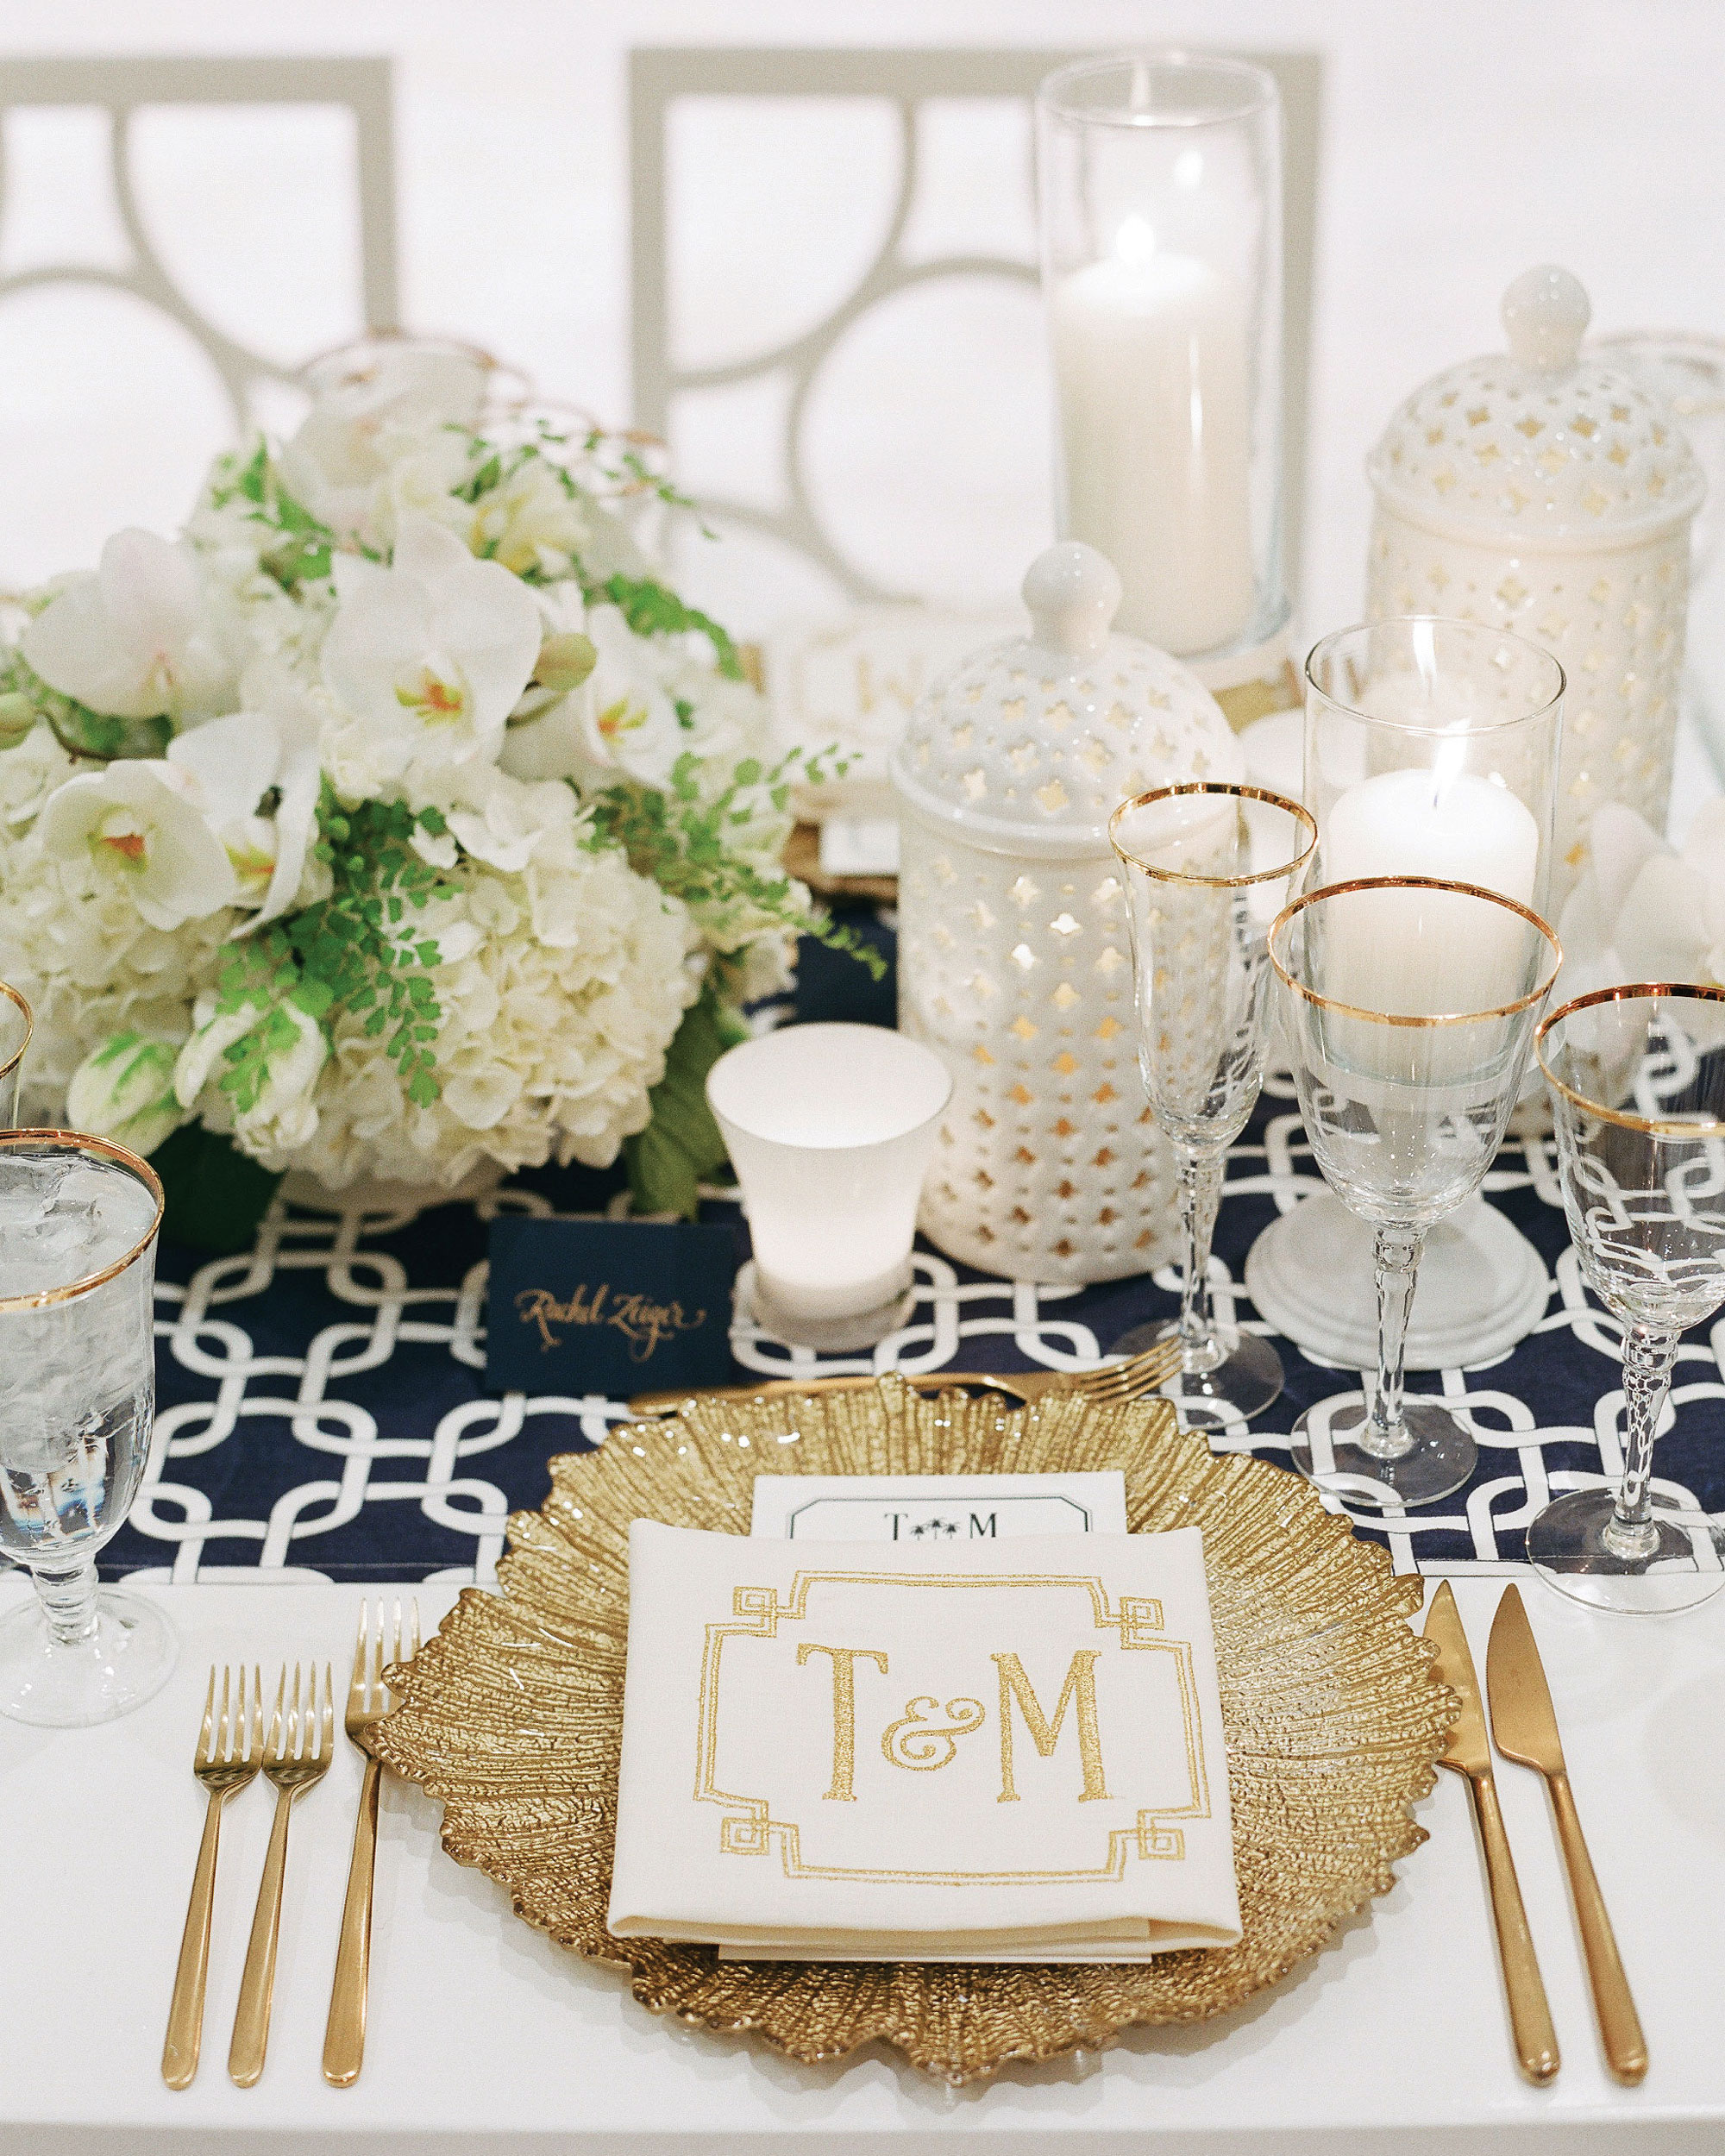 tali-mike-real-wedding-gold-table-place-settings.jpg